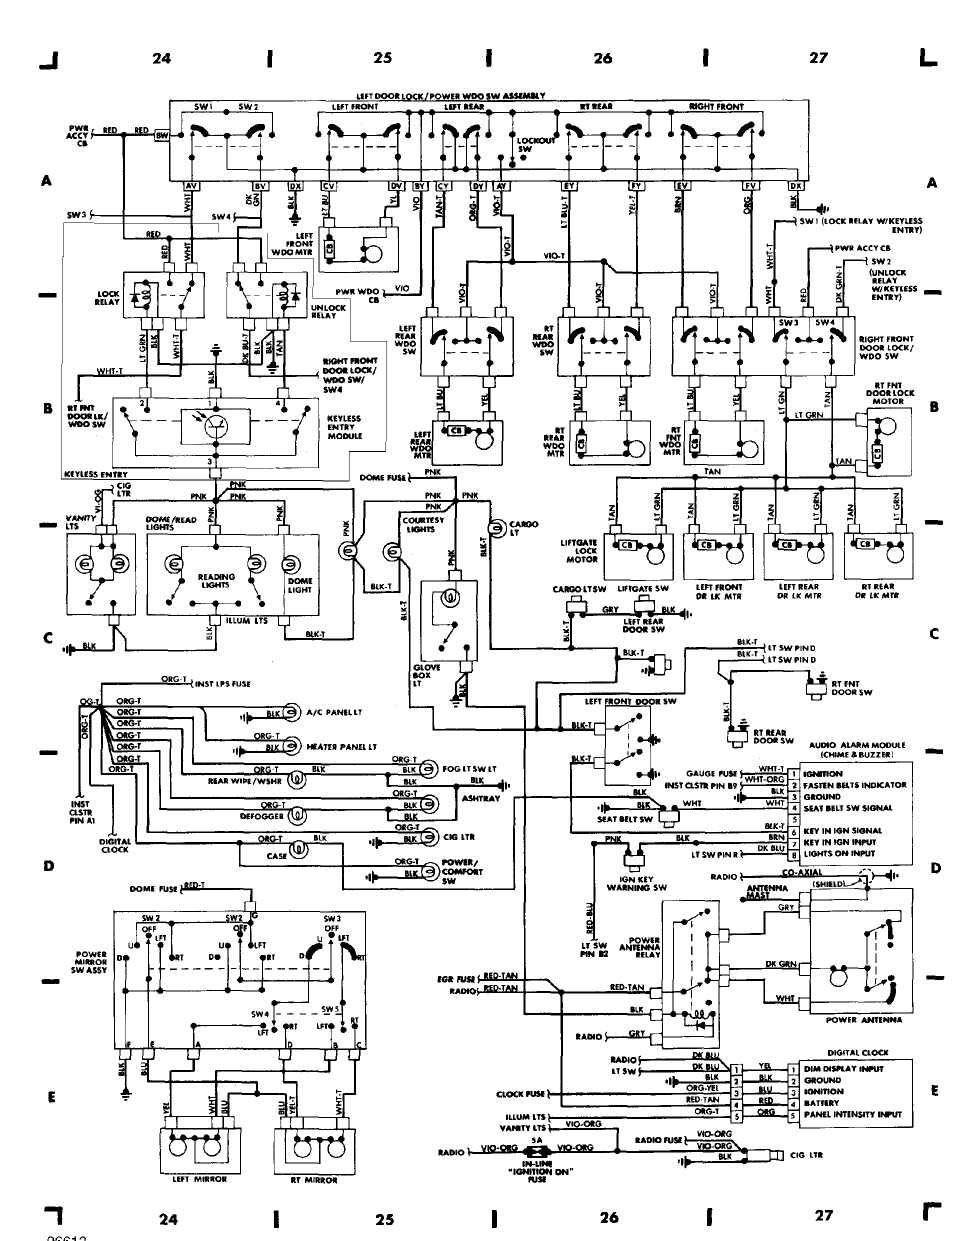 wiring_diagrams_html_61f5e0ad wiring diagrams 1984 1991 jeep cherokee (xj) jeep 95 jeep wrangler wiring harness diagram at honlapkeszites.co